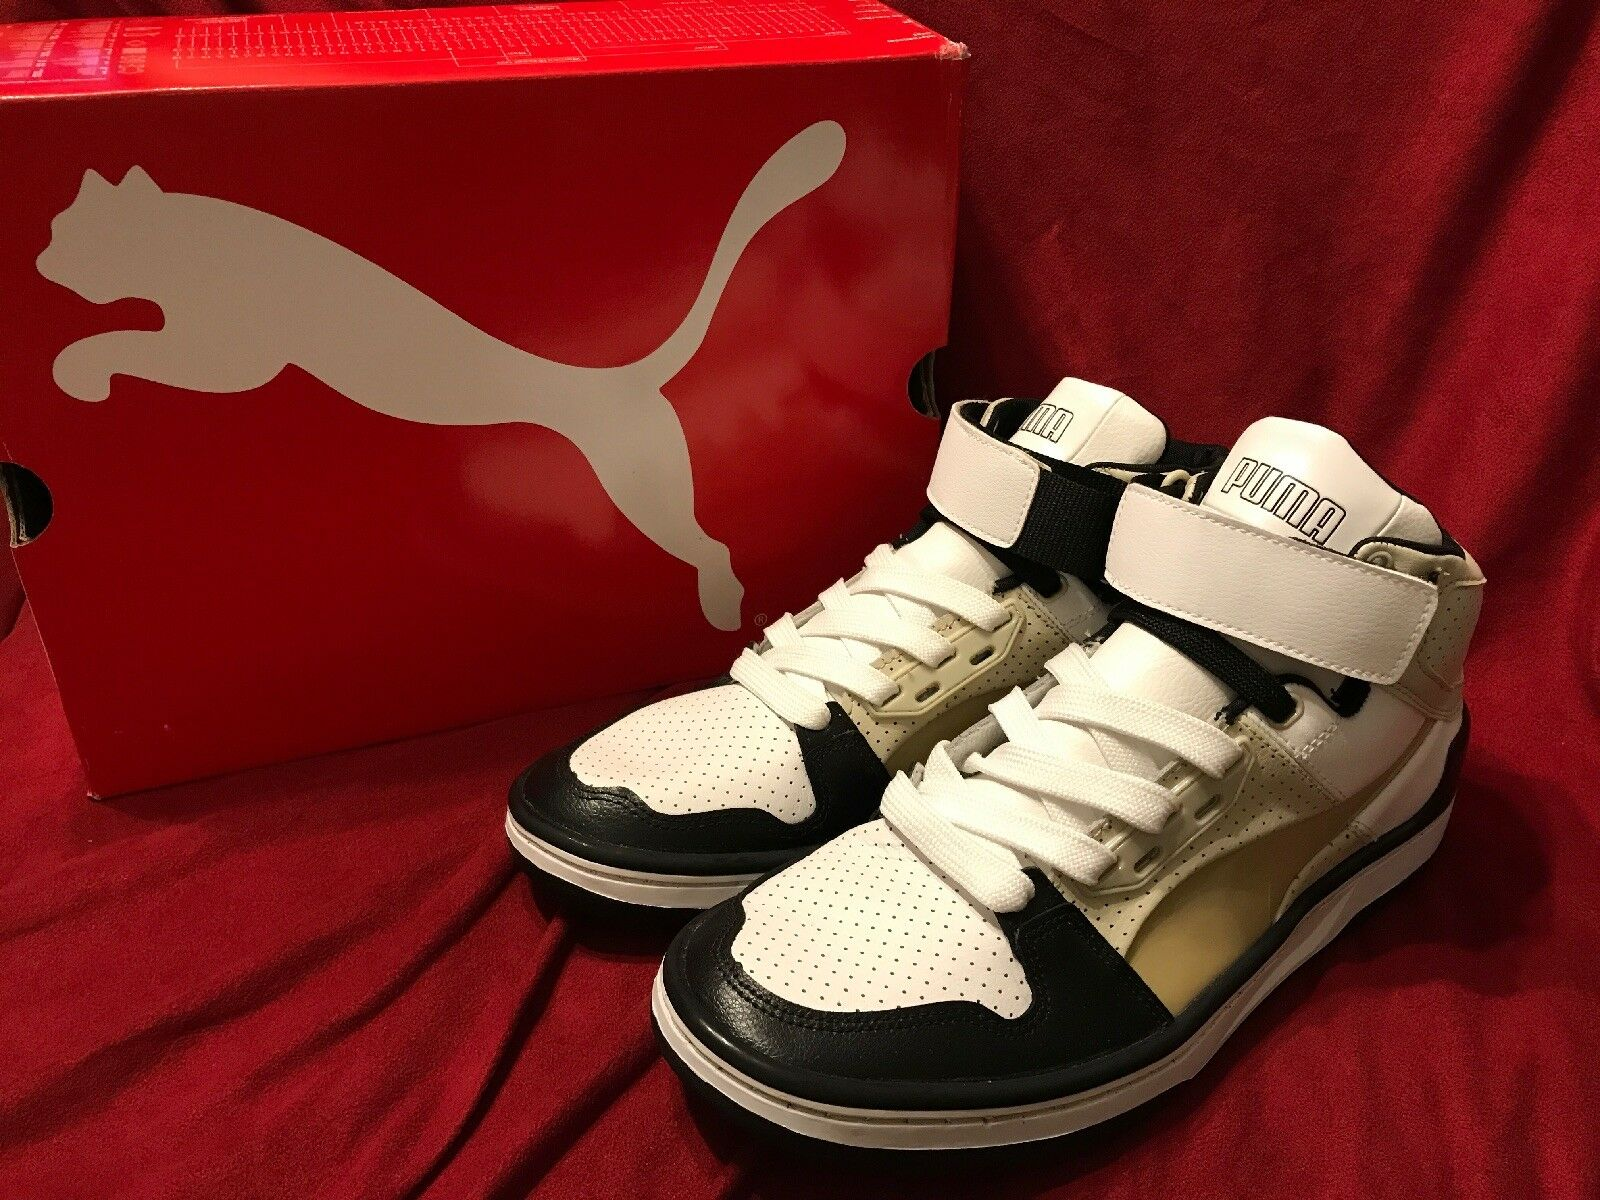 PUMA UNLIMITED HI EVO CUP LX Men's Basketball shoes Size 9.5 New In Box